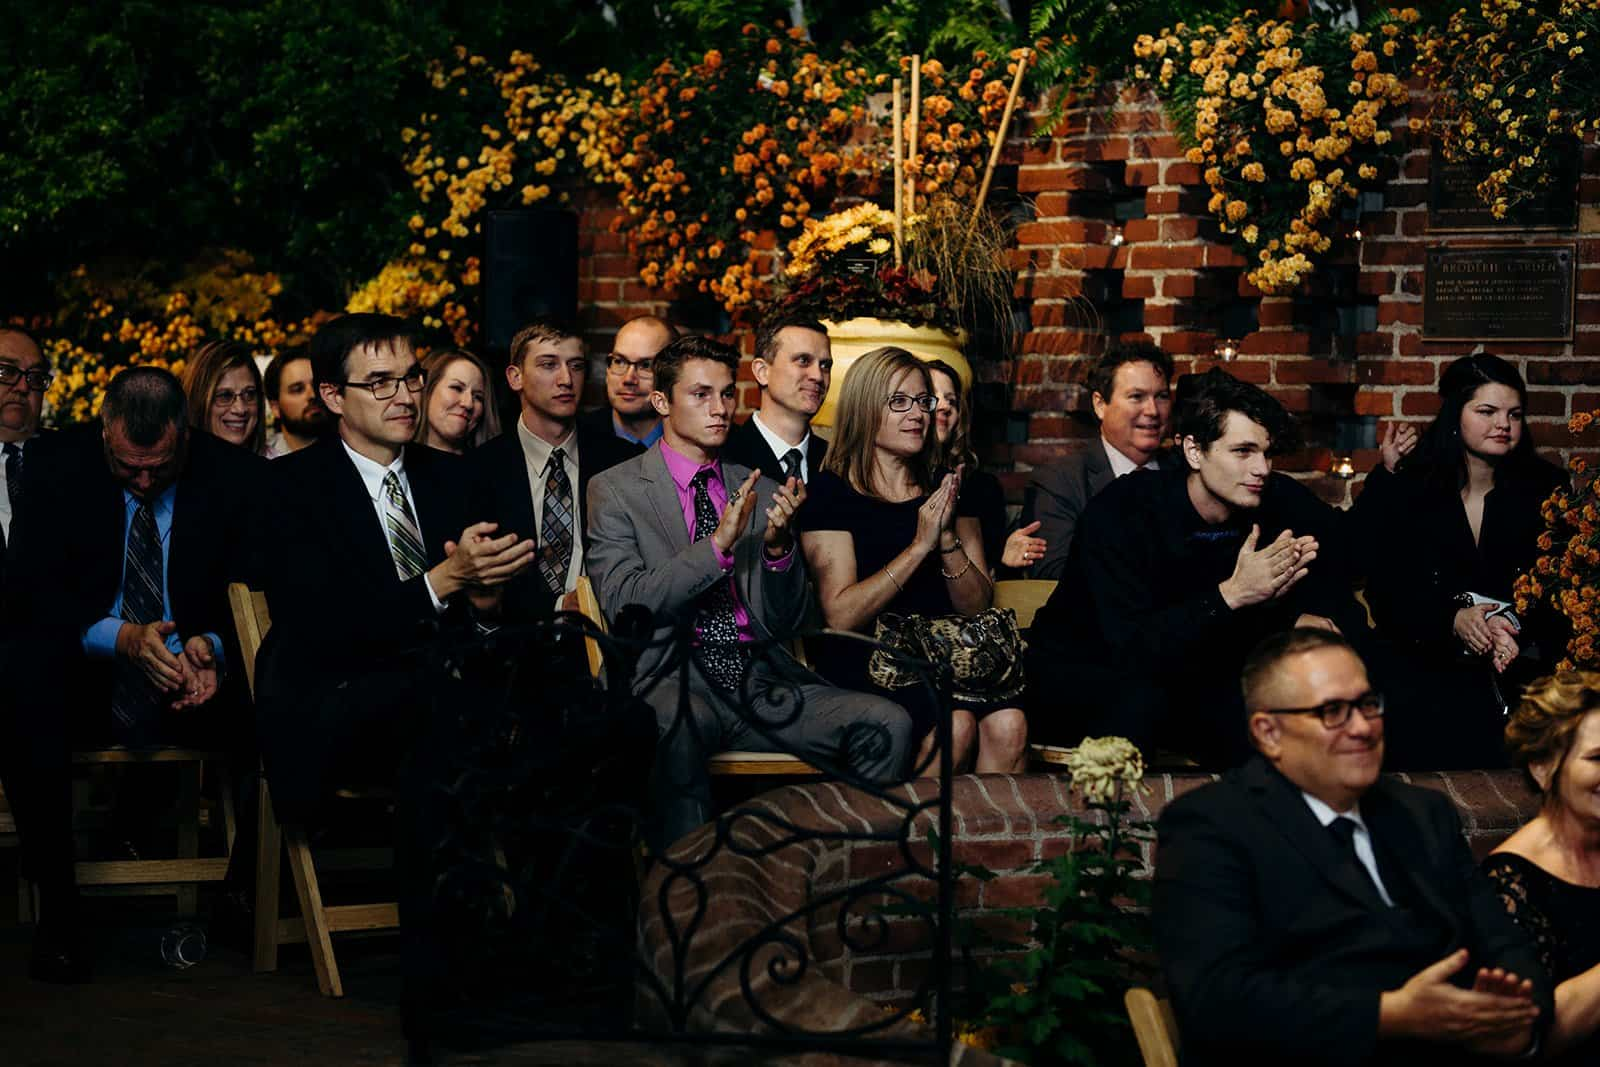 group of wedding guests celebrating